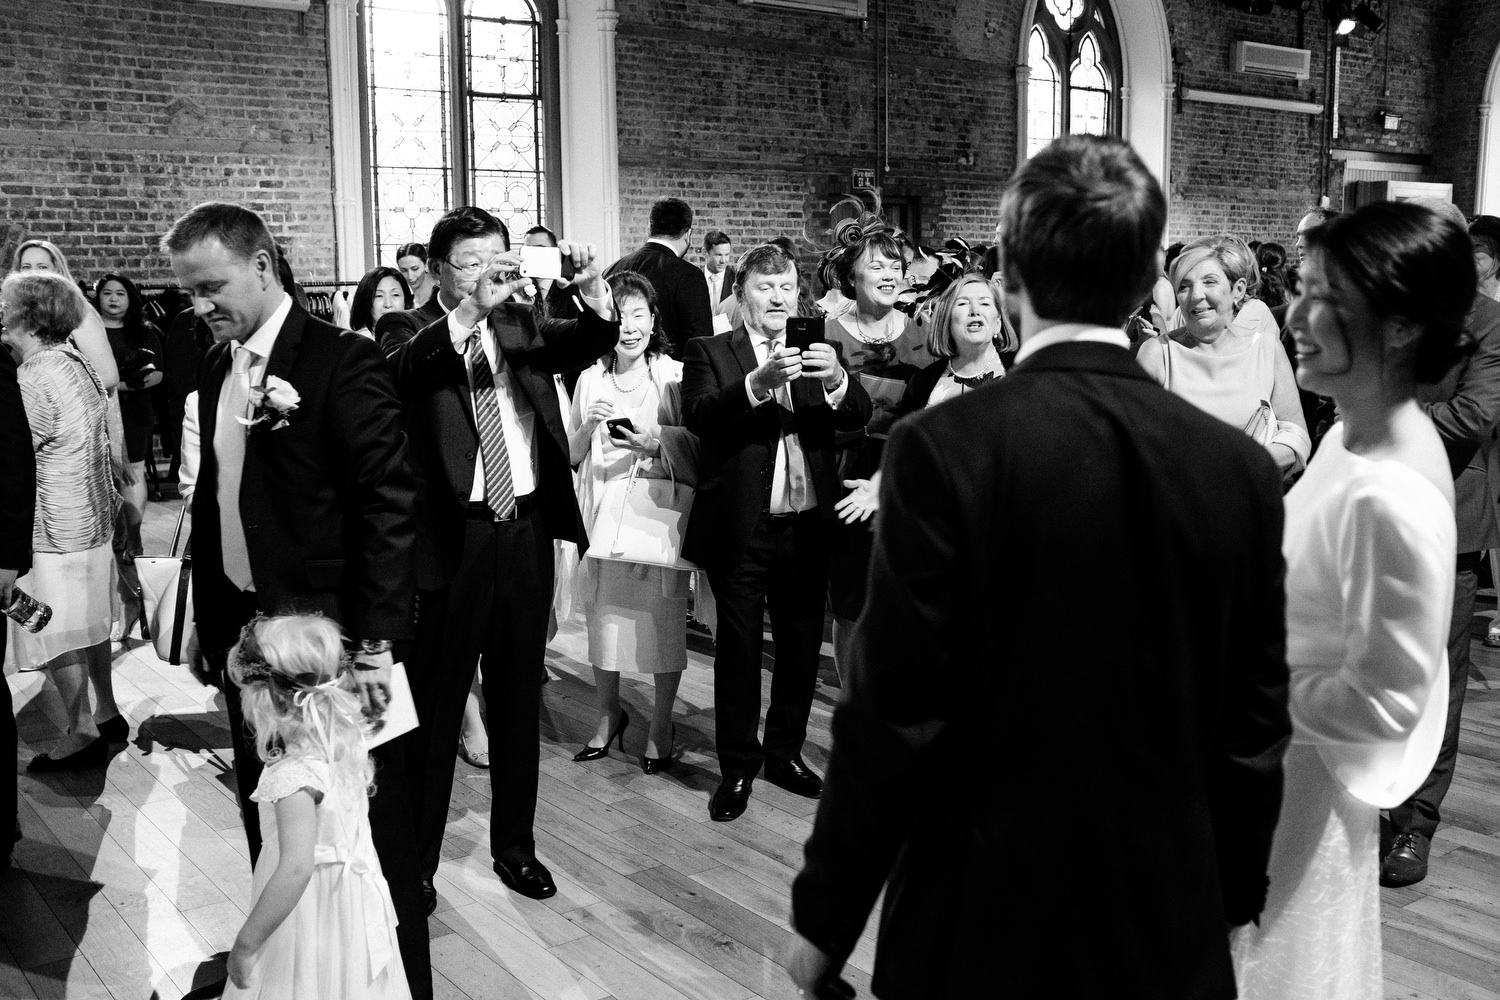 dmp0319_dublin_alley_photography_david_mcclelland_ceremony_humanist_documentary_theatre_smock_wedding_photographer